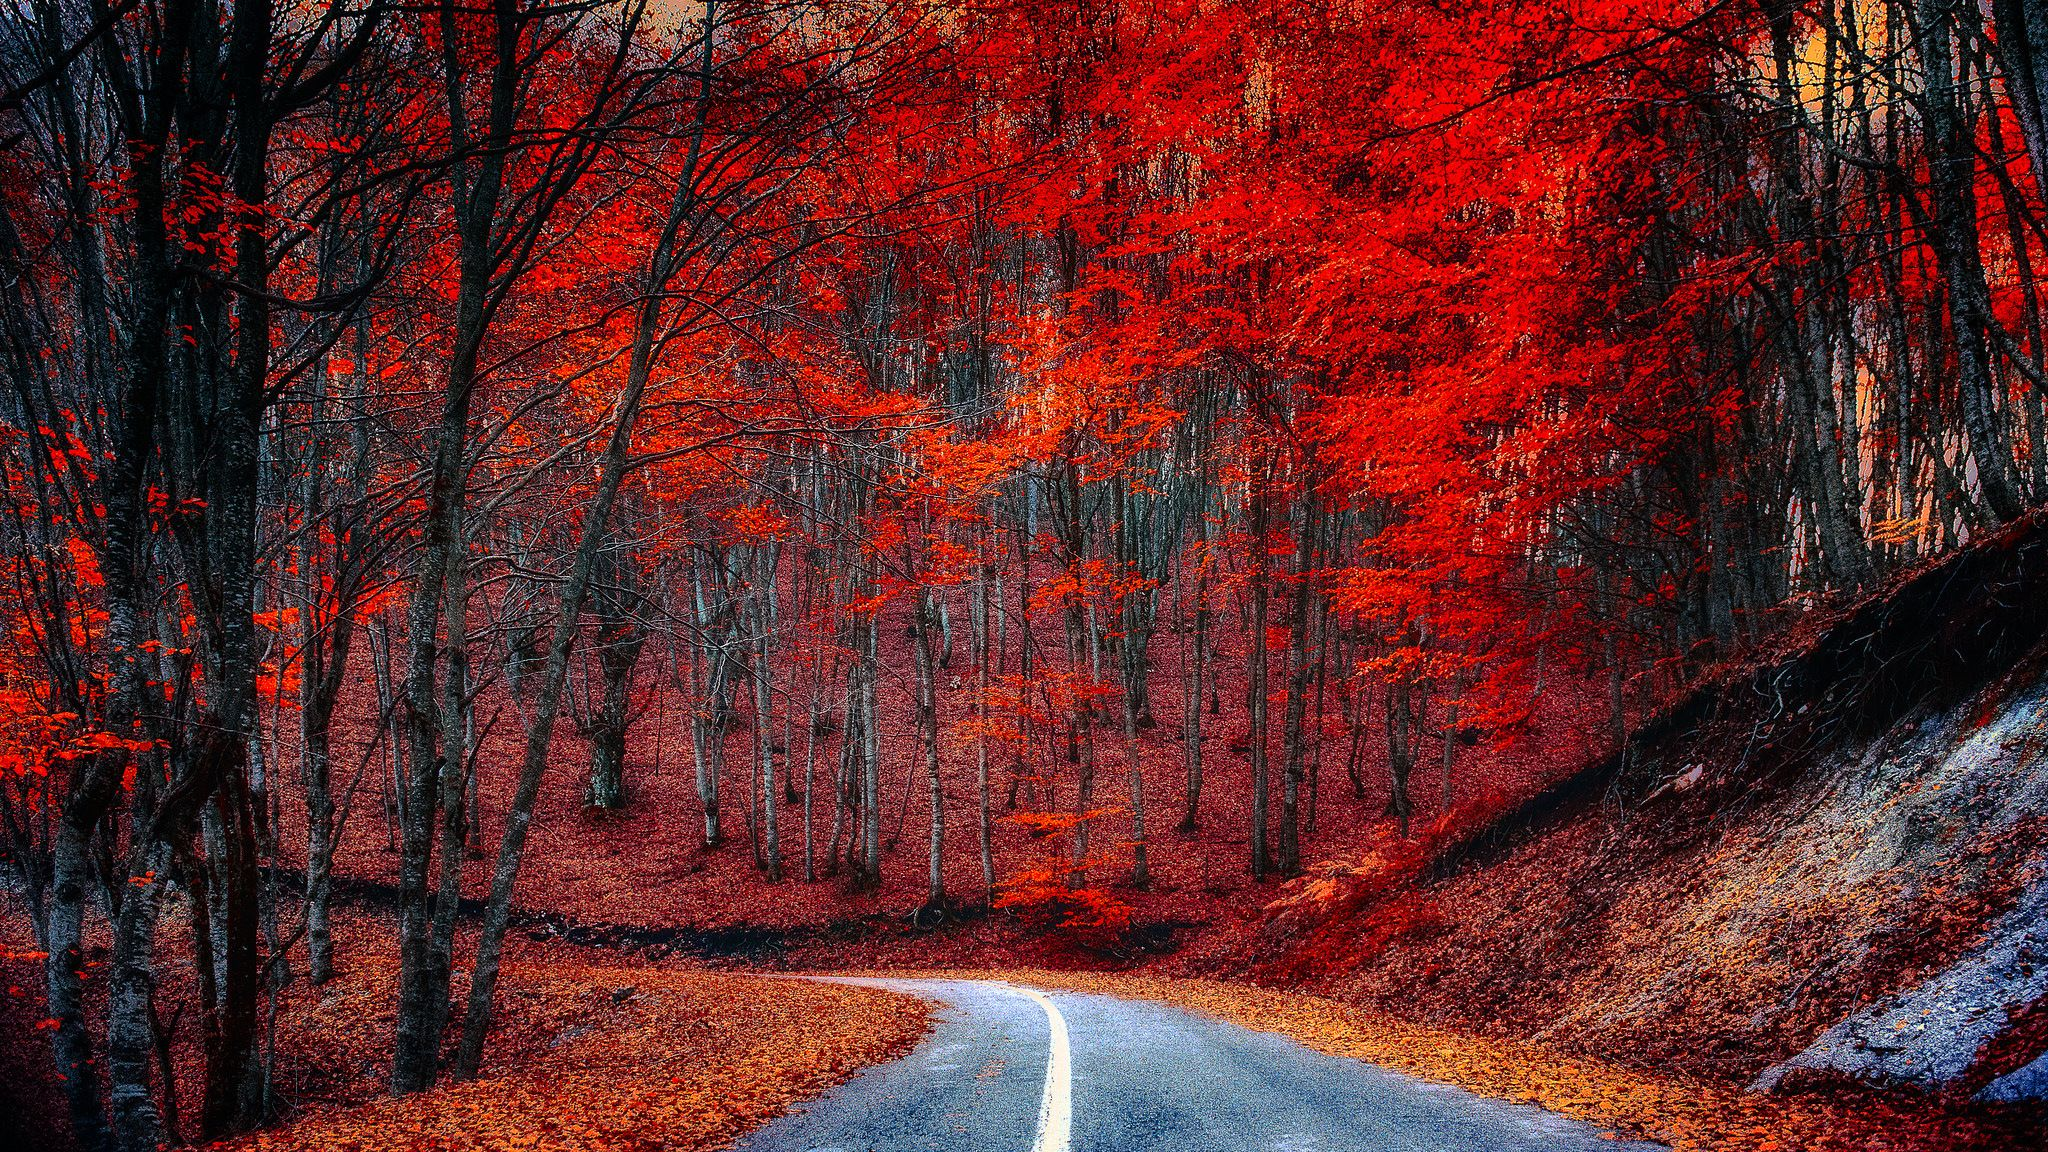 Dropped leaves on the road margins forest photos nature